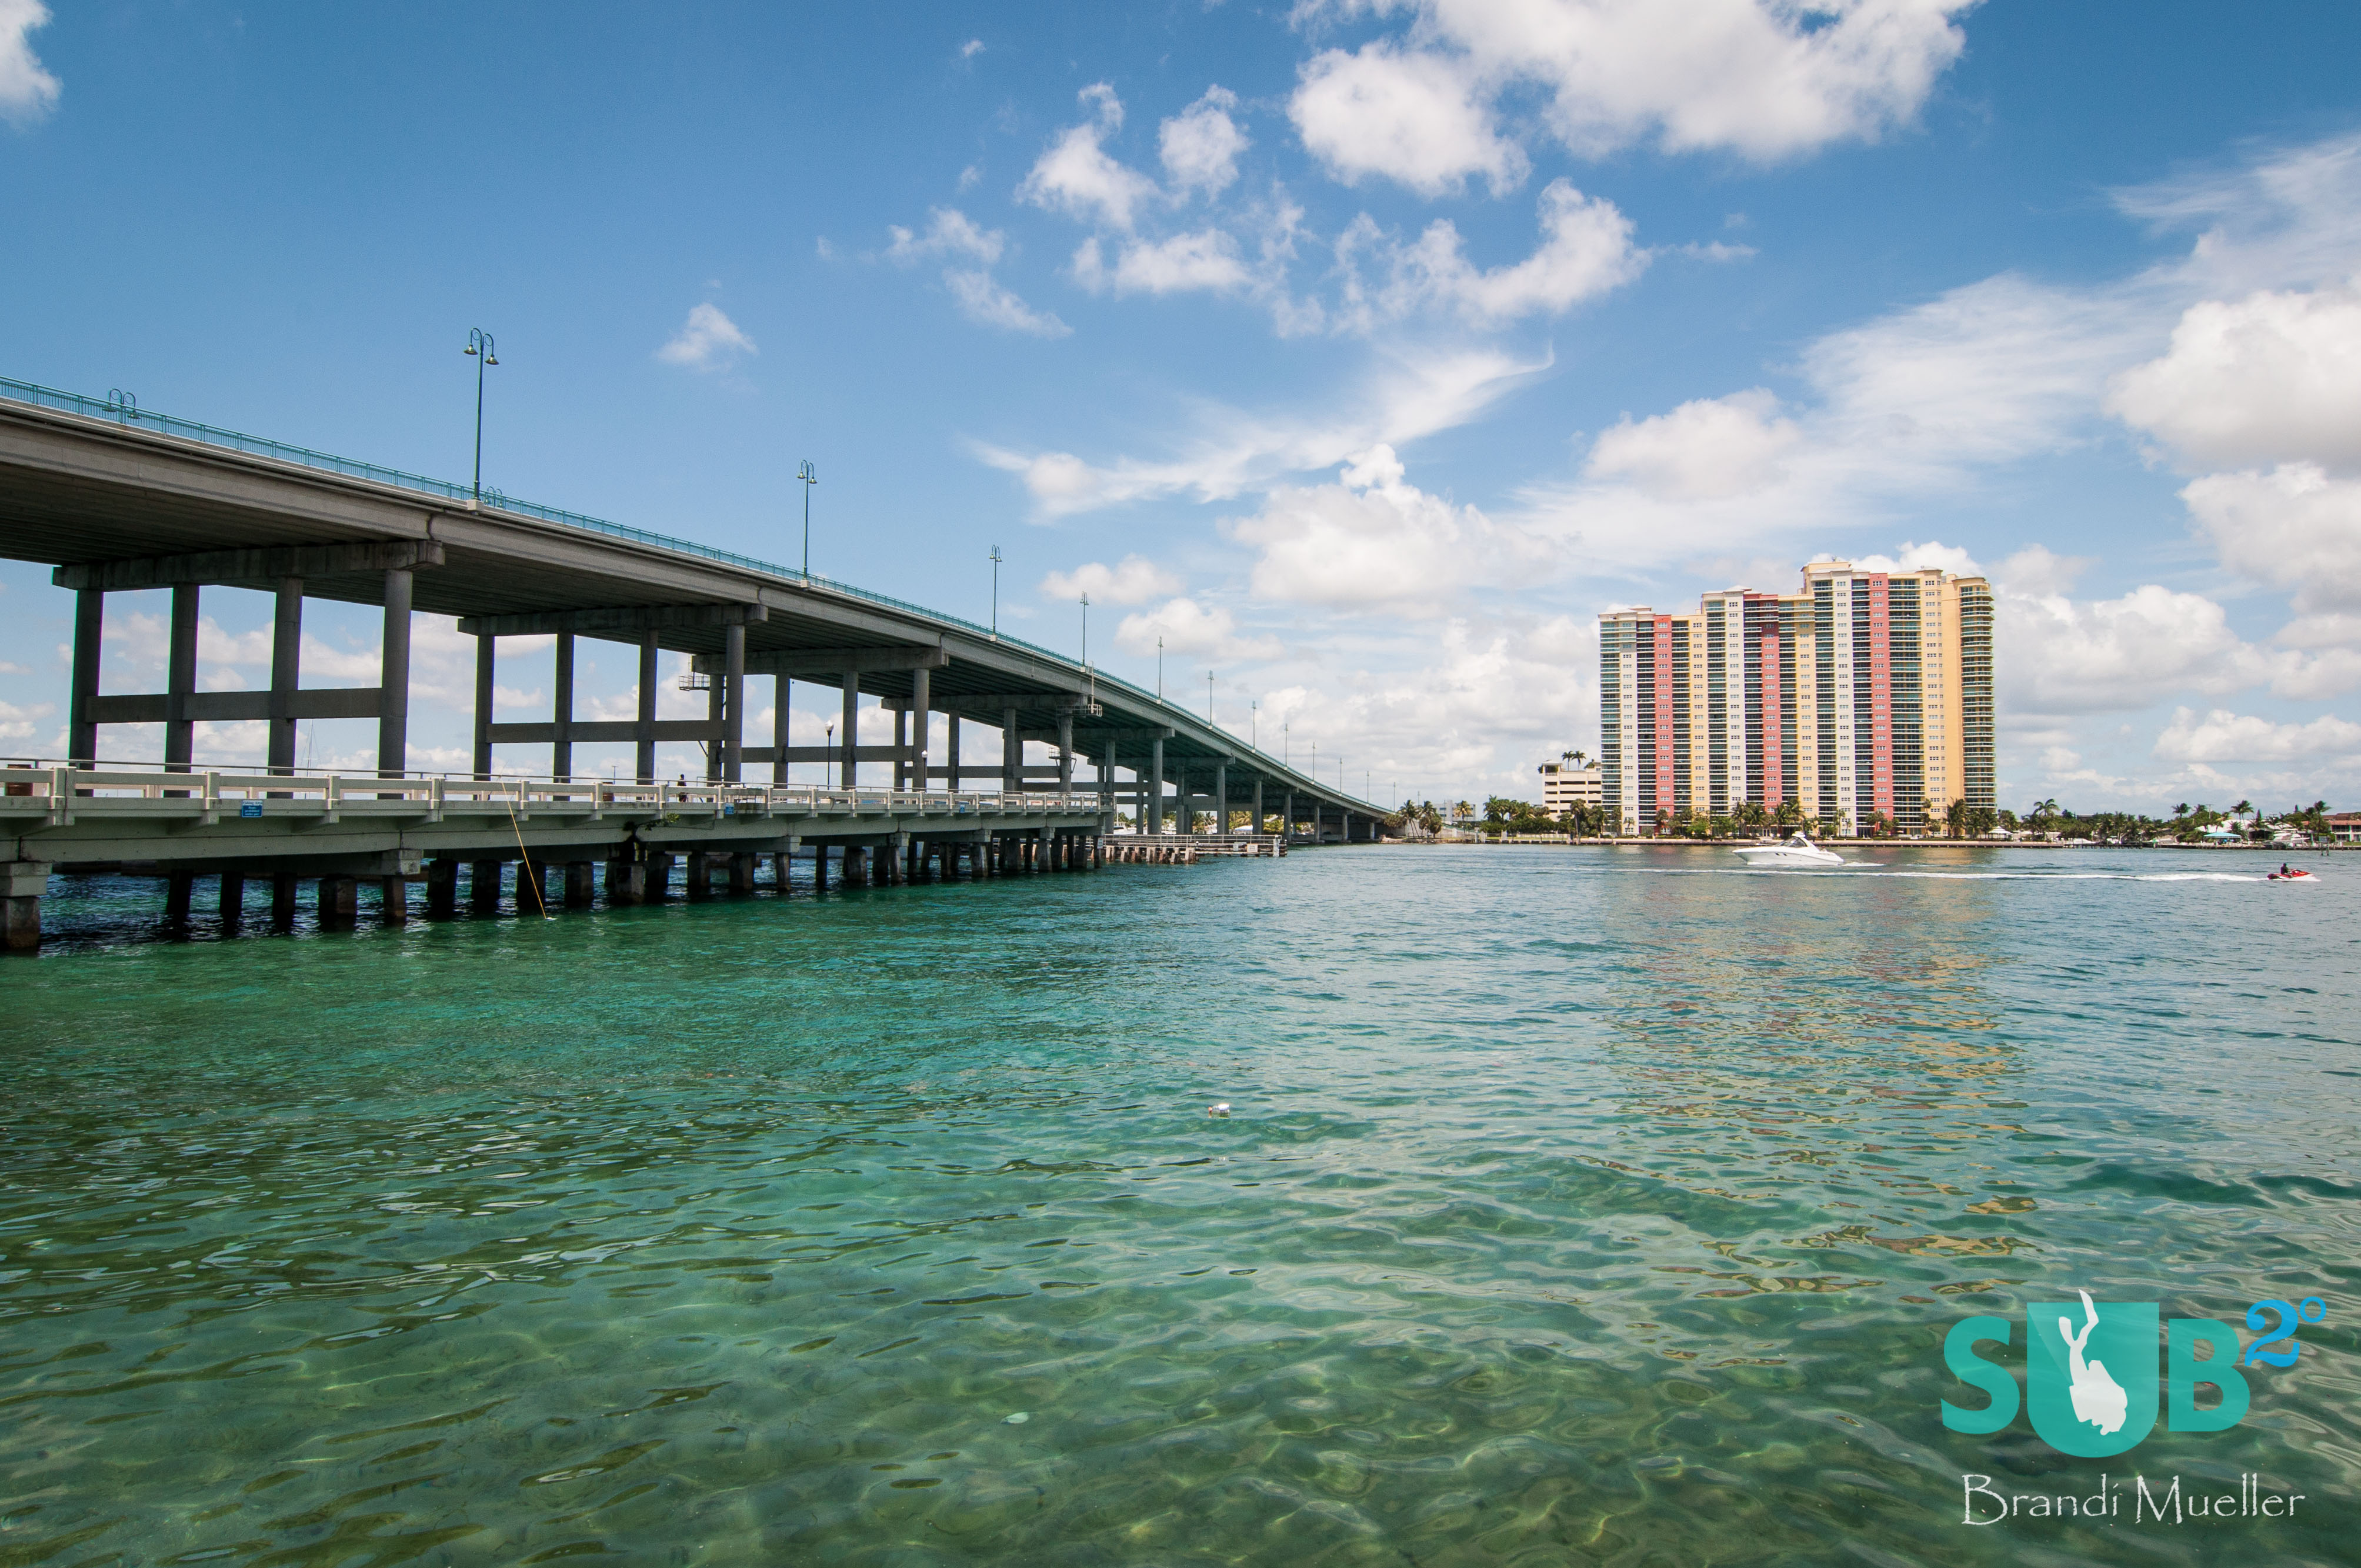 Located in Riviera Beach, Florida, the Blue Heron Bridge has some of North America's best muck diving below it.